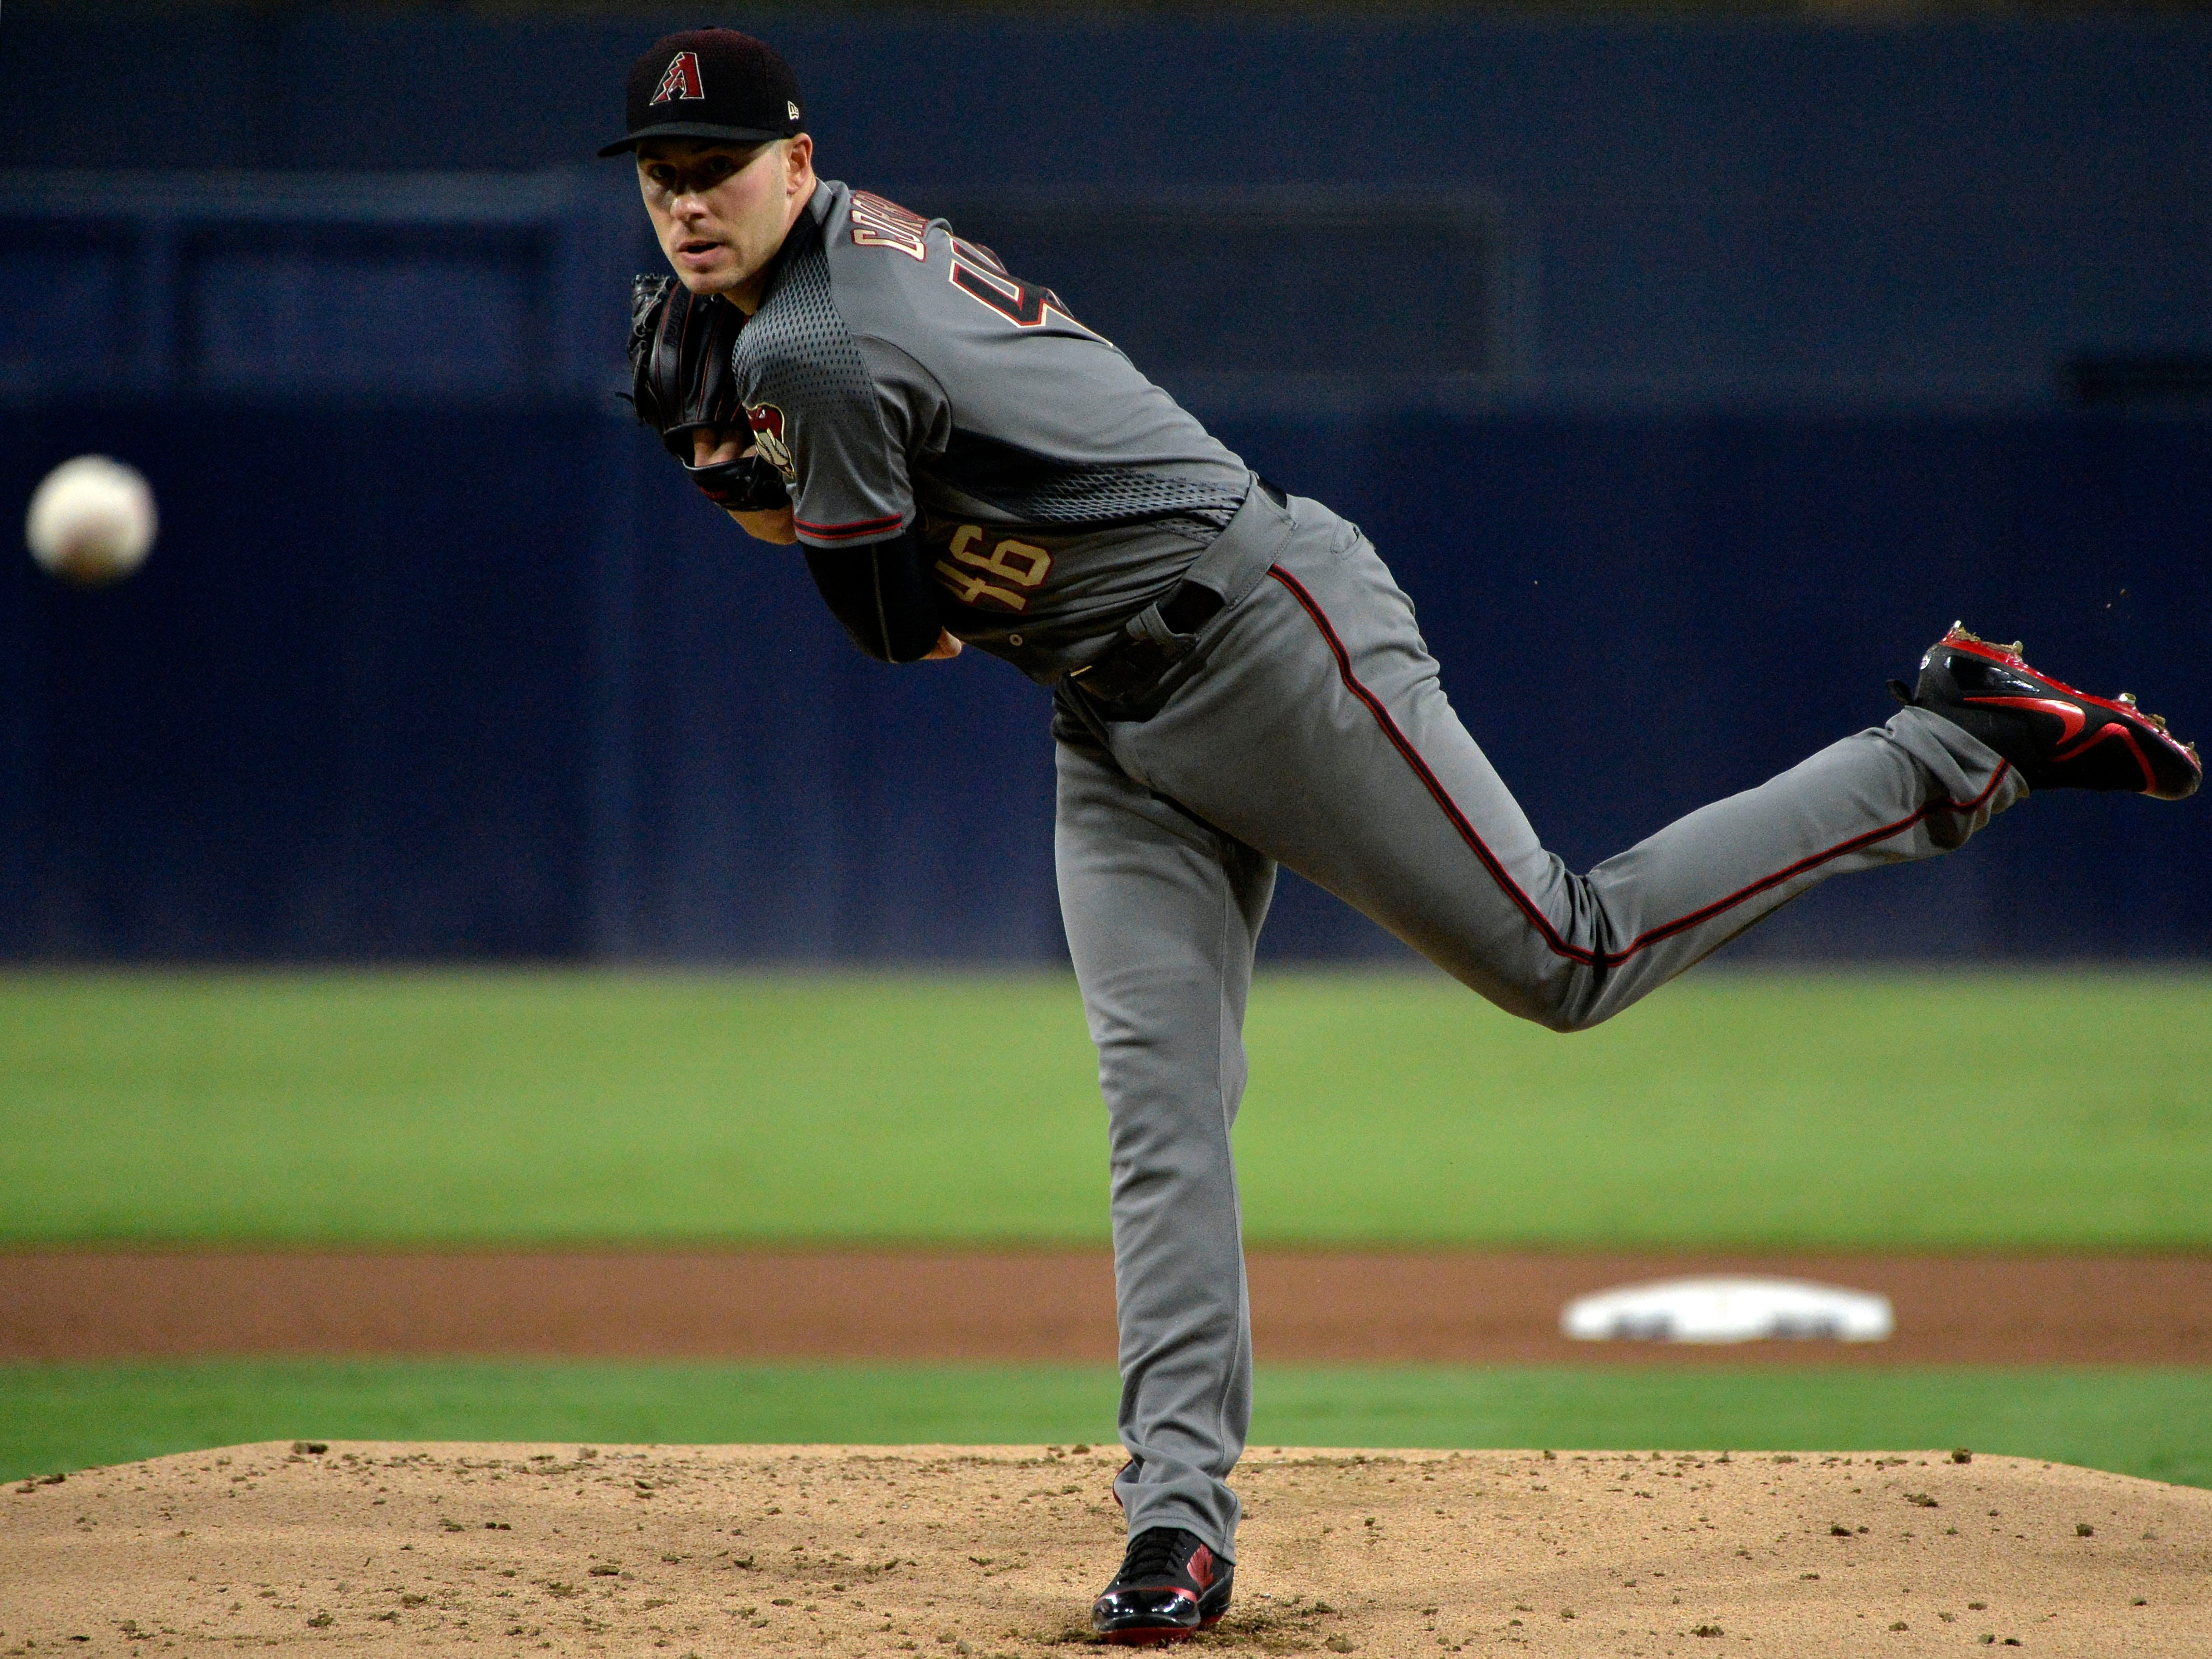 Sep 28, 2018; San Diego, CA, USA; Arizona Diamondbacks starting pitcher Patrick Corbin (46) pitches during the first inning against the San Diego Padres at Petco Park. Mandatory Credit: Jake Roth-USA TODAY Sports